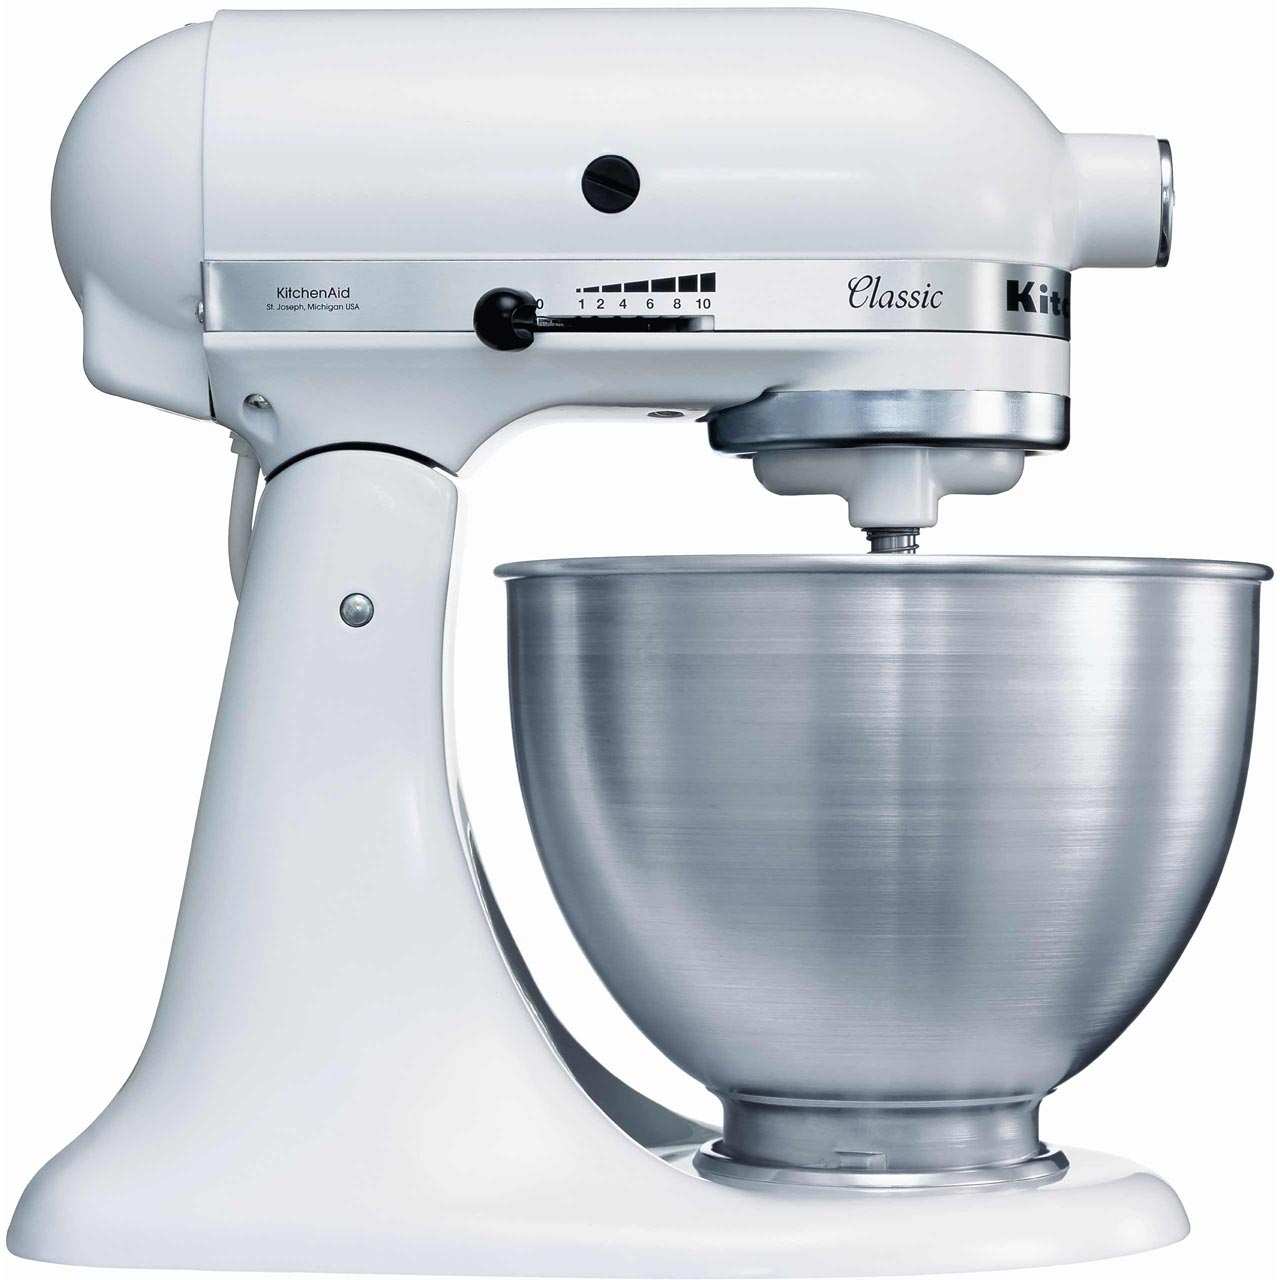 KitchenAid 5K45SS Stand Mixer with 4.3 Litre Bowl - White